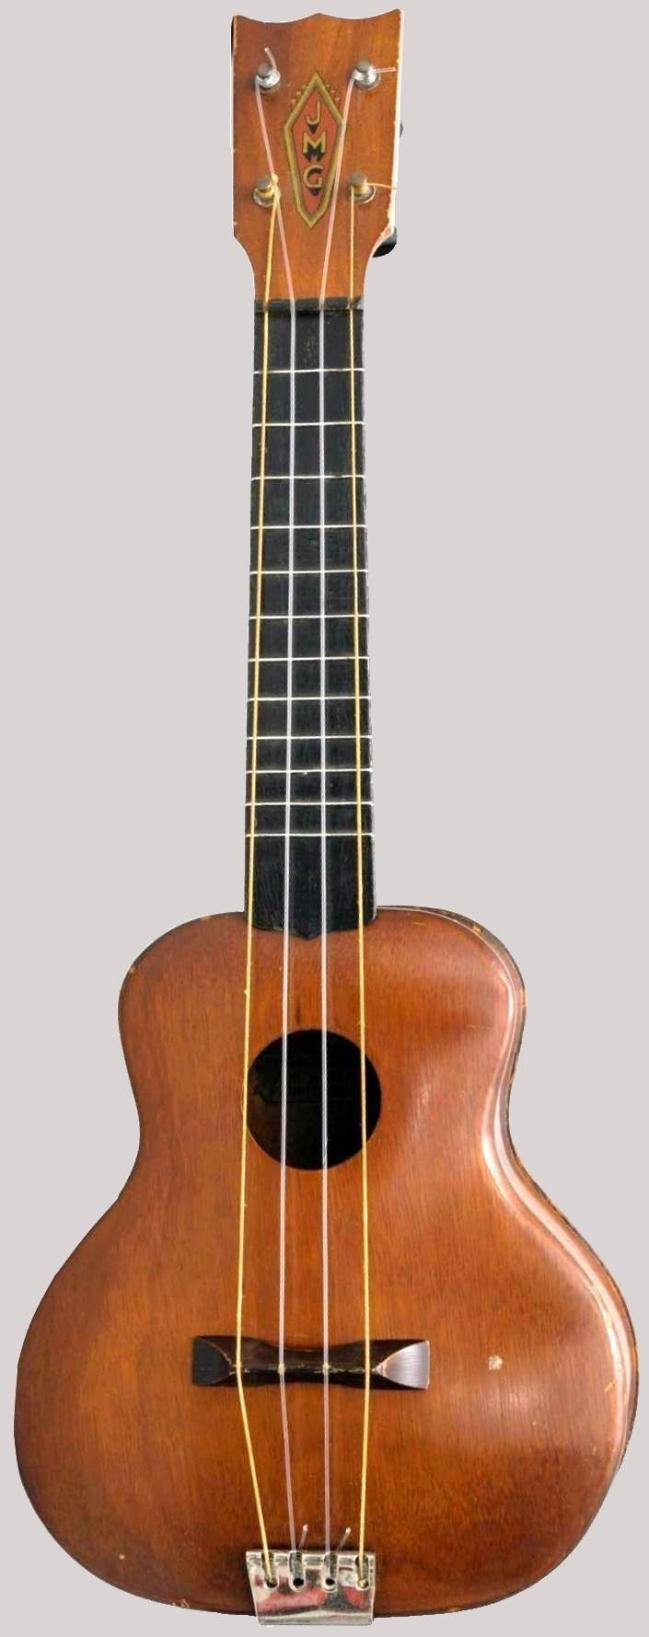 JMG Jack Maskell Guitars Soprano at Lardy's Ukulele Database